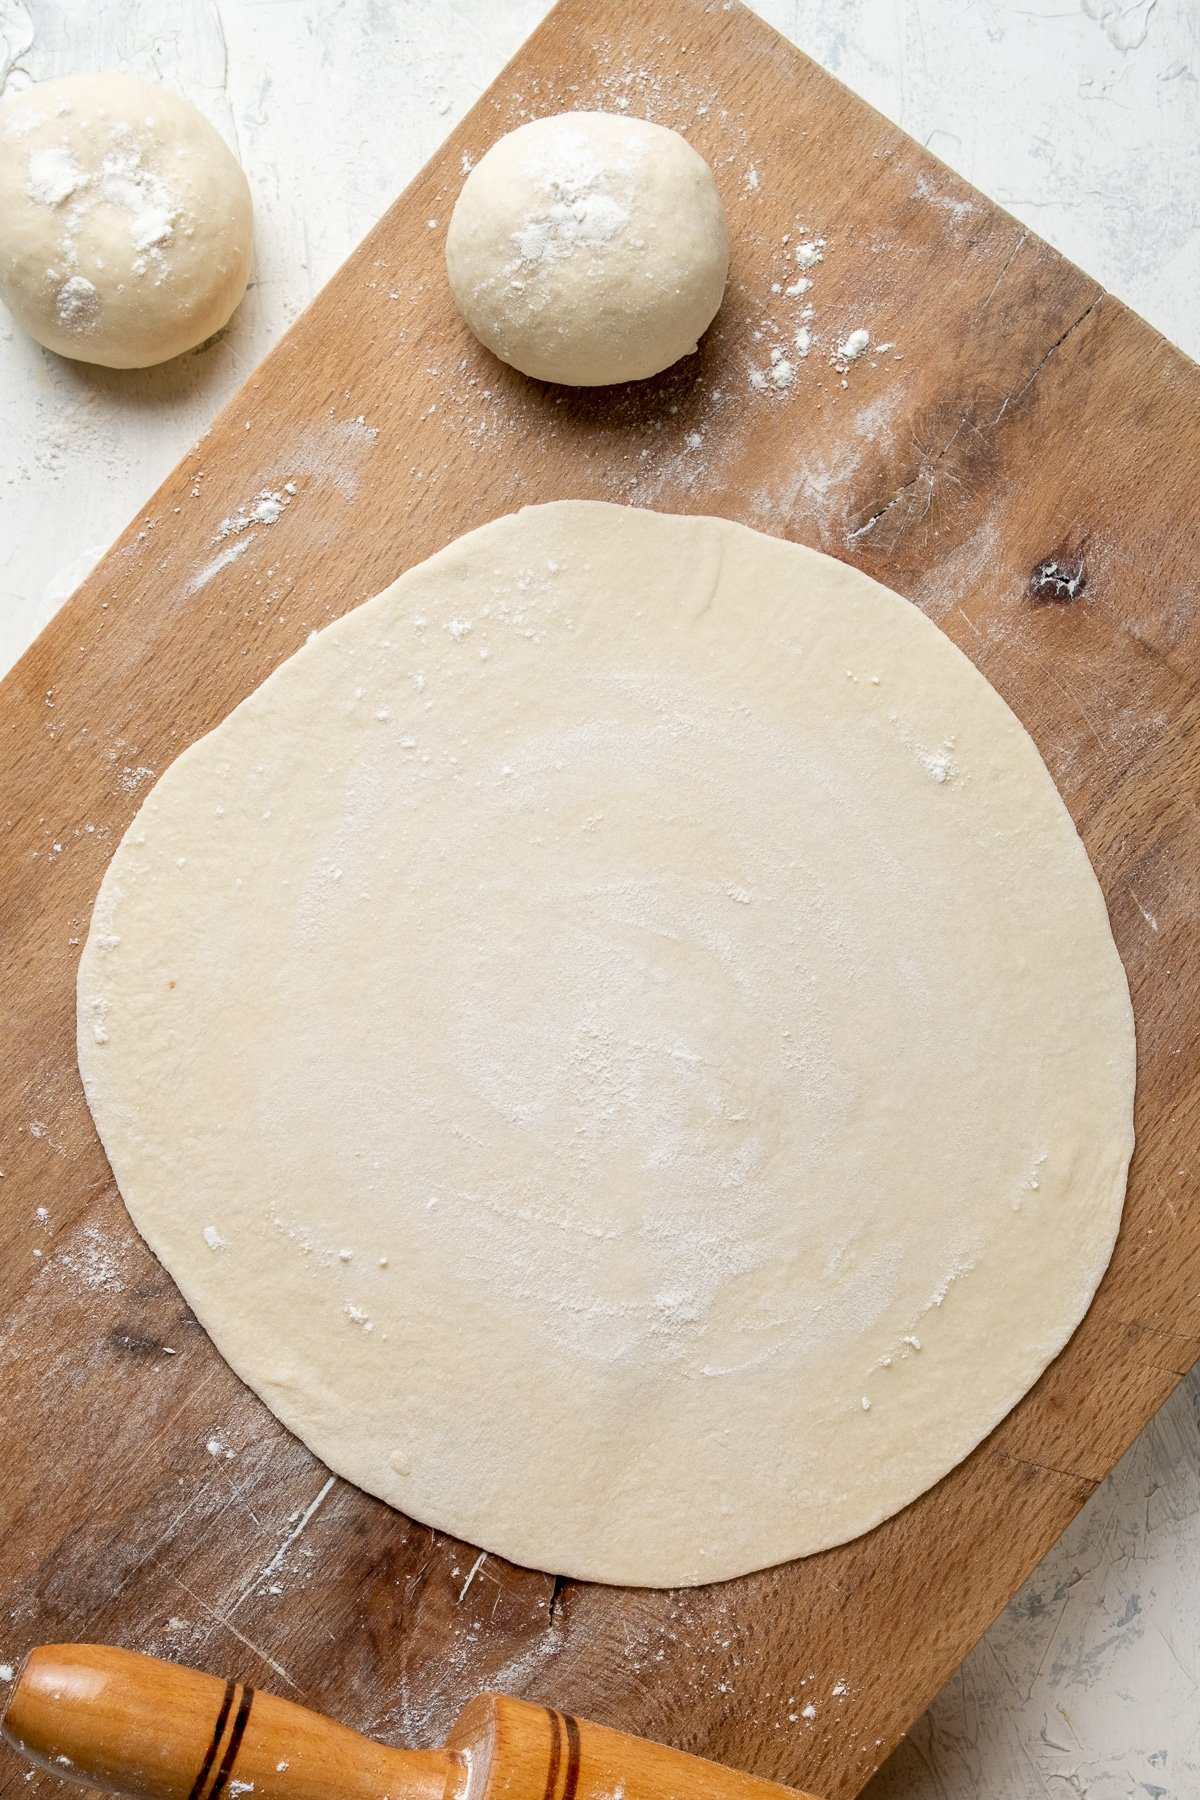 Rolled out dough on a wooden board and two dough balls on the side.